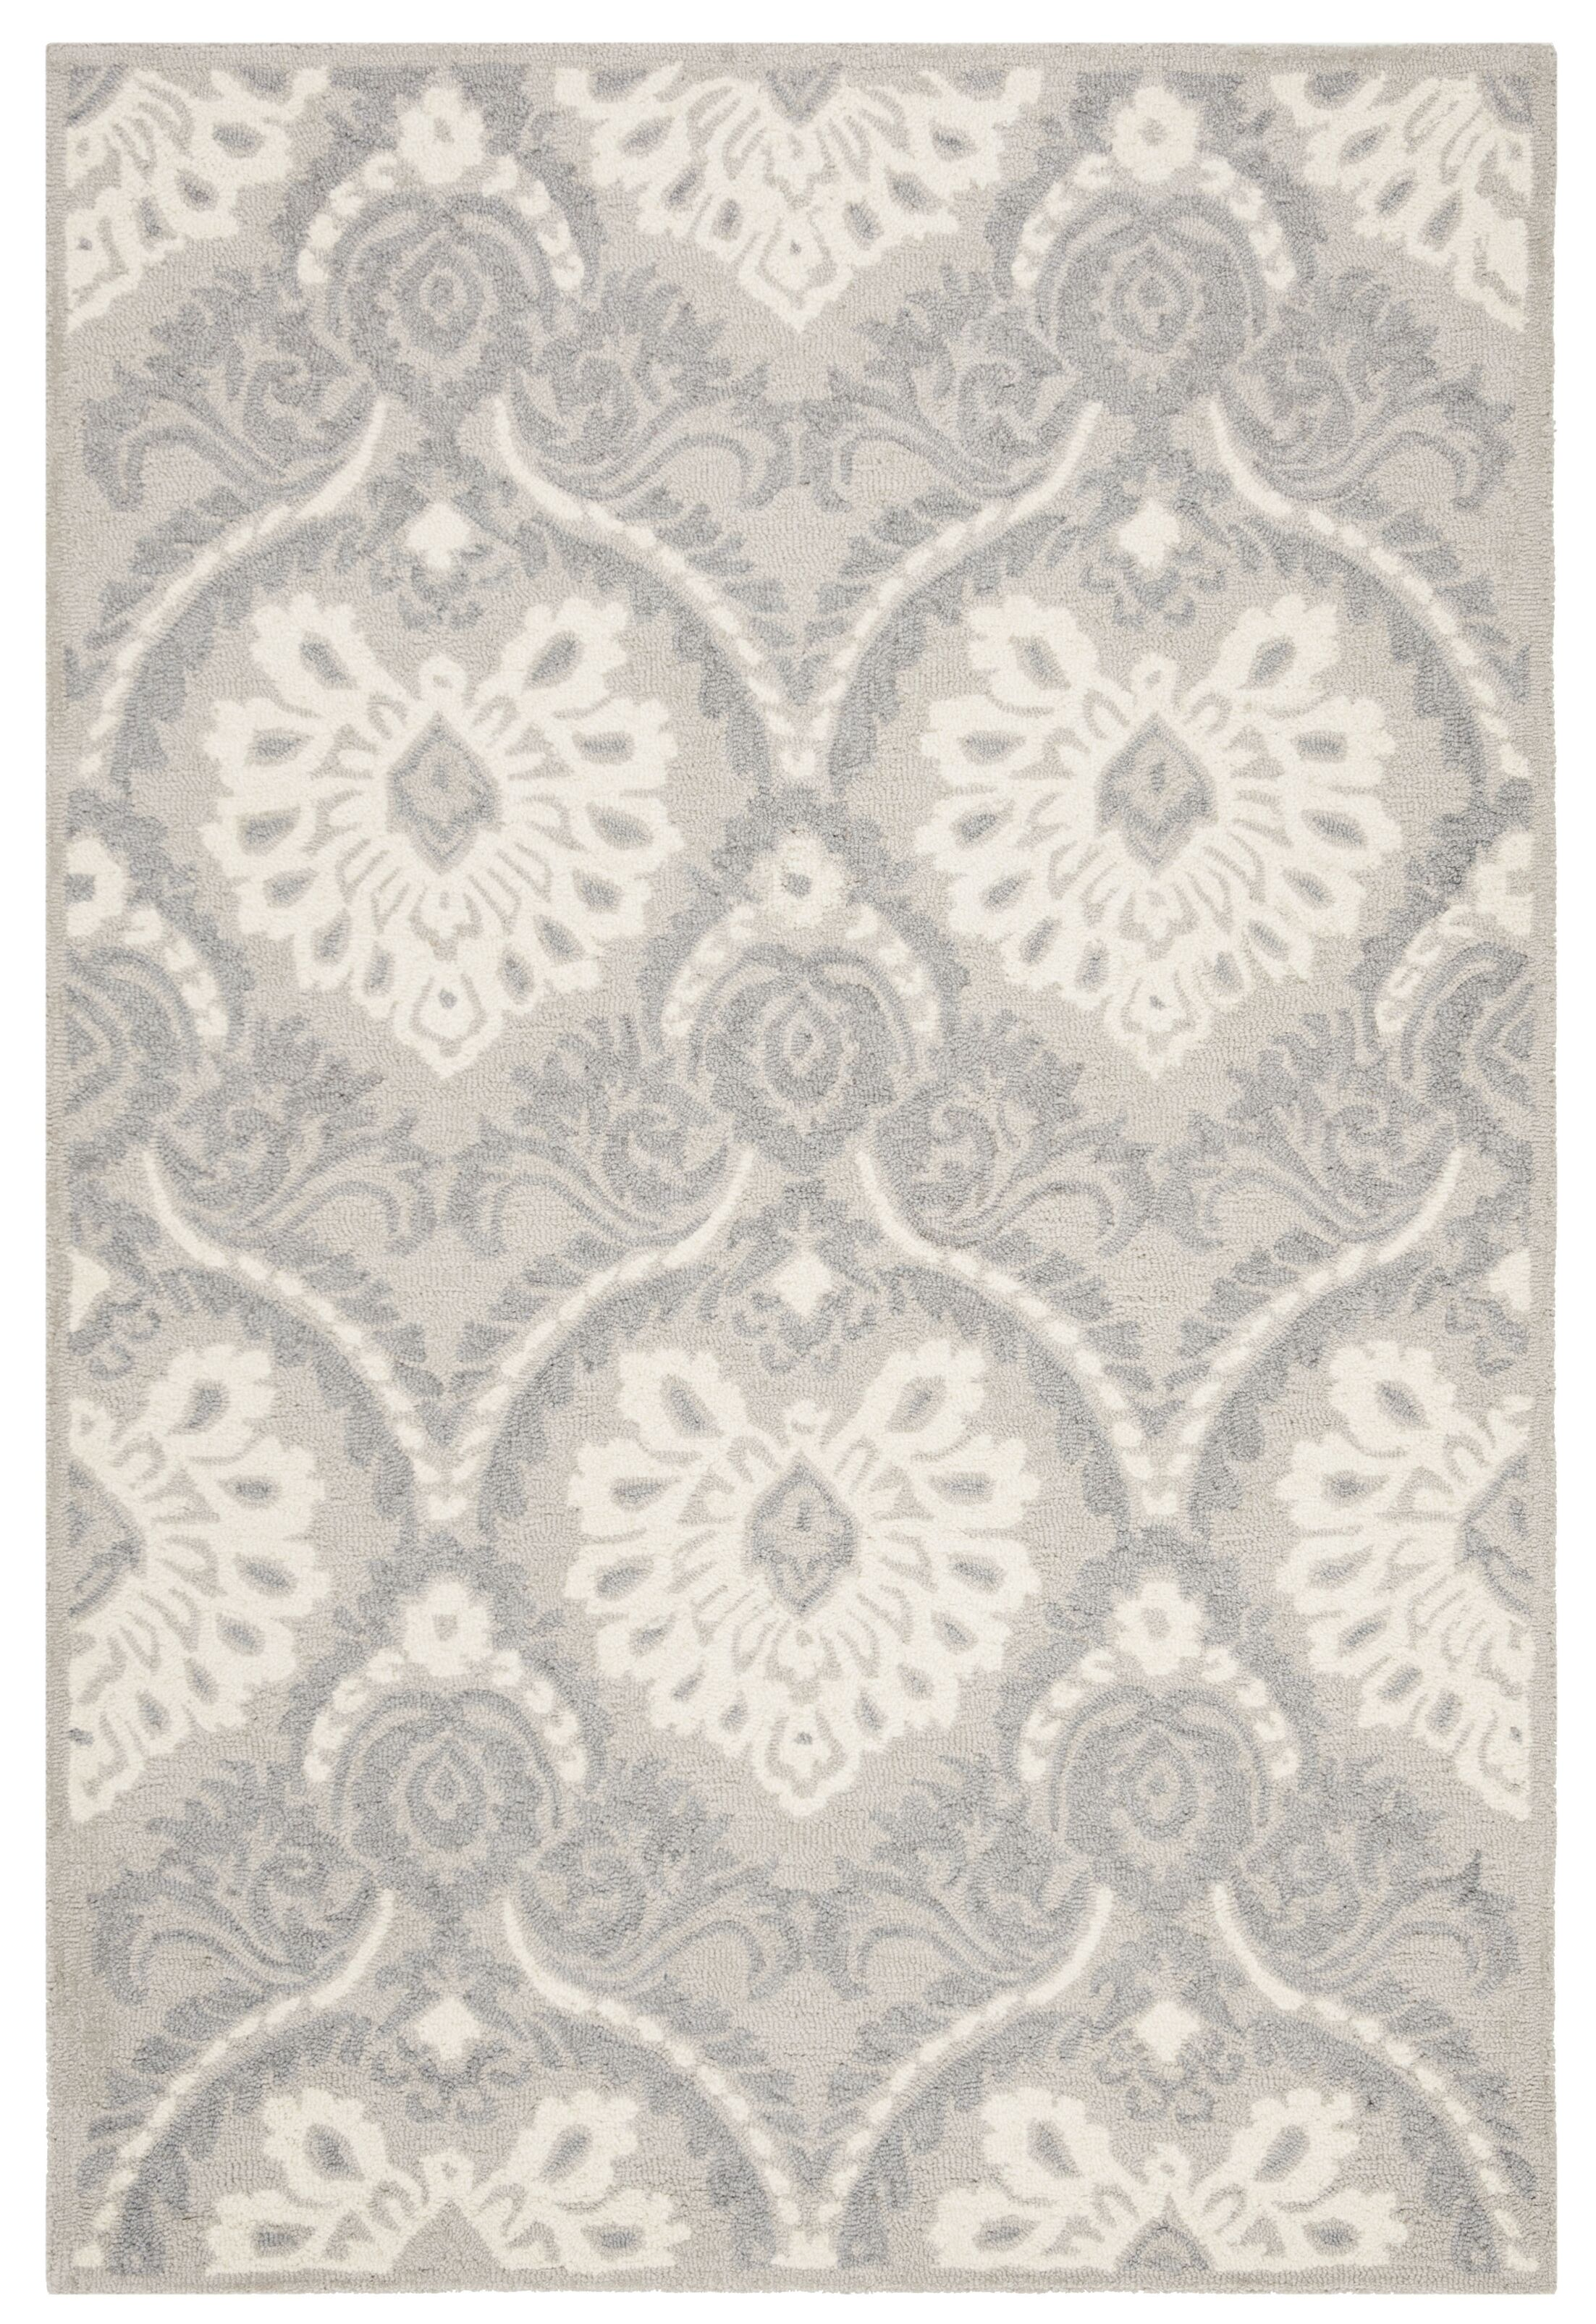 Bevis Hand Tufted Wool Light Gray Area Rug Rug Size: Rectangle 4' x 6'